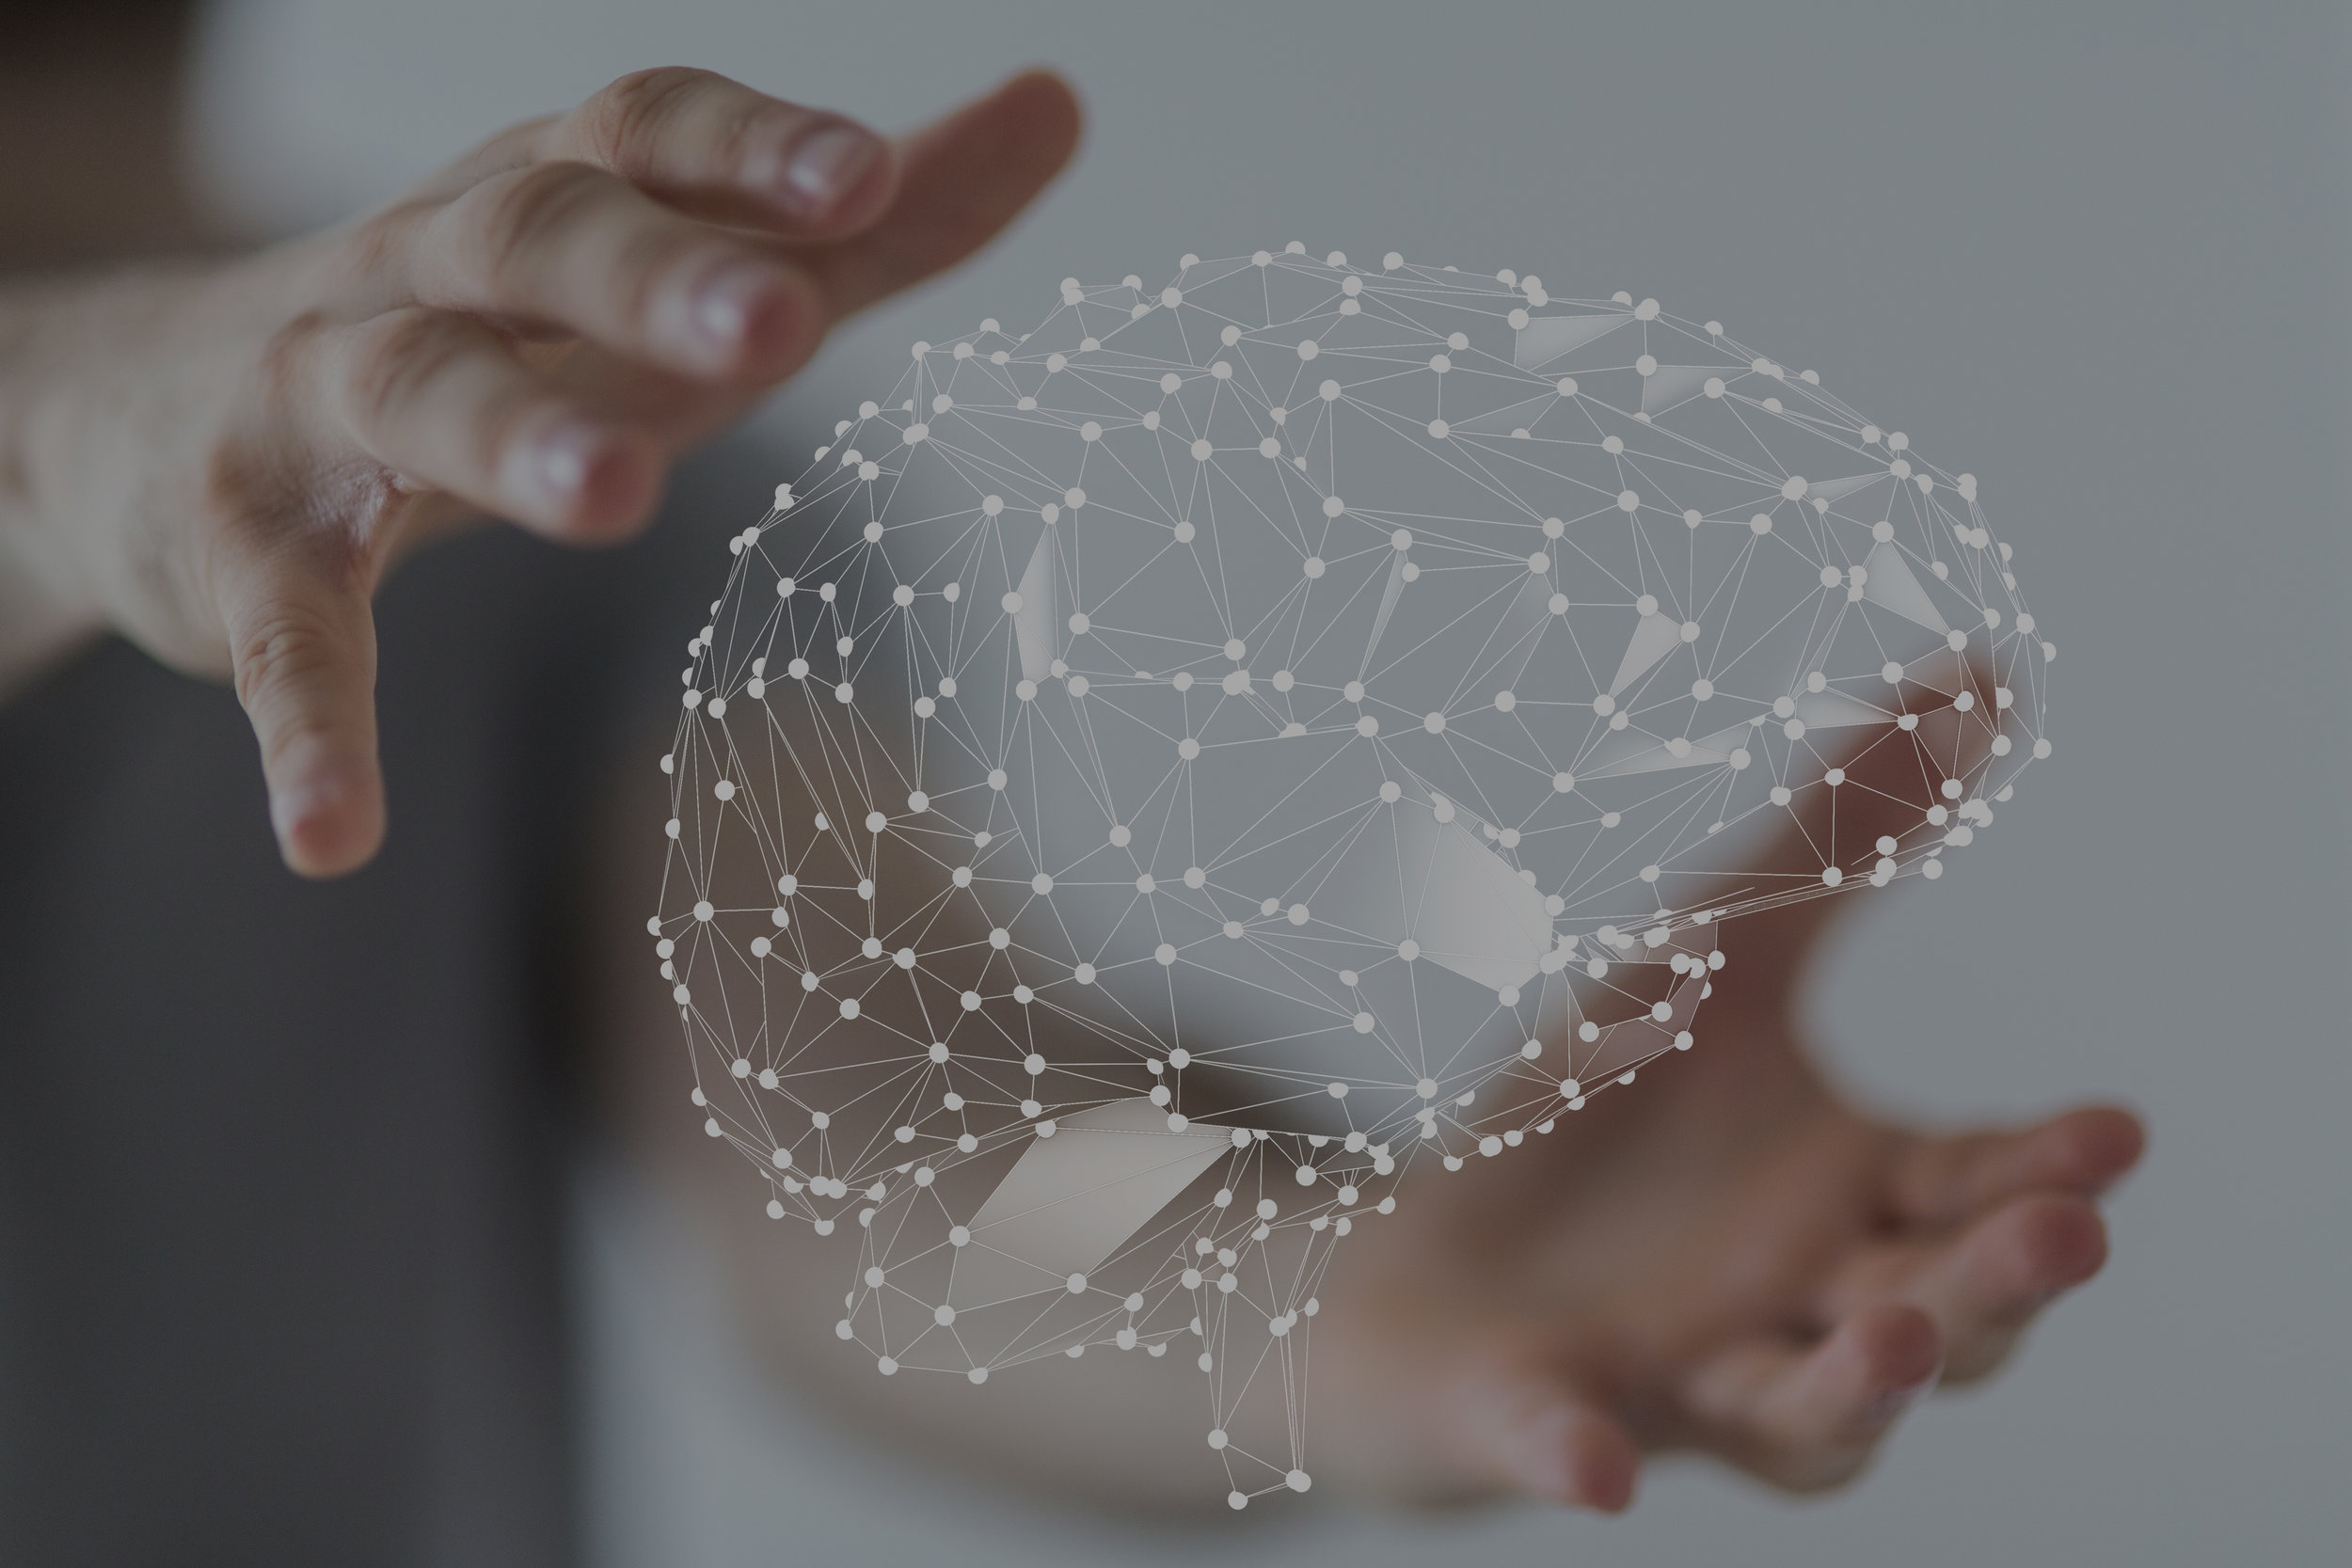 Machine Learning & Data Science - Identifying patterns for revenue growth, achieving operational efficiencies and reducing risks with our statistical and machine learning techniques.